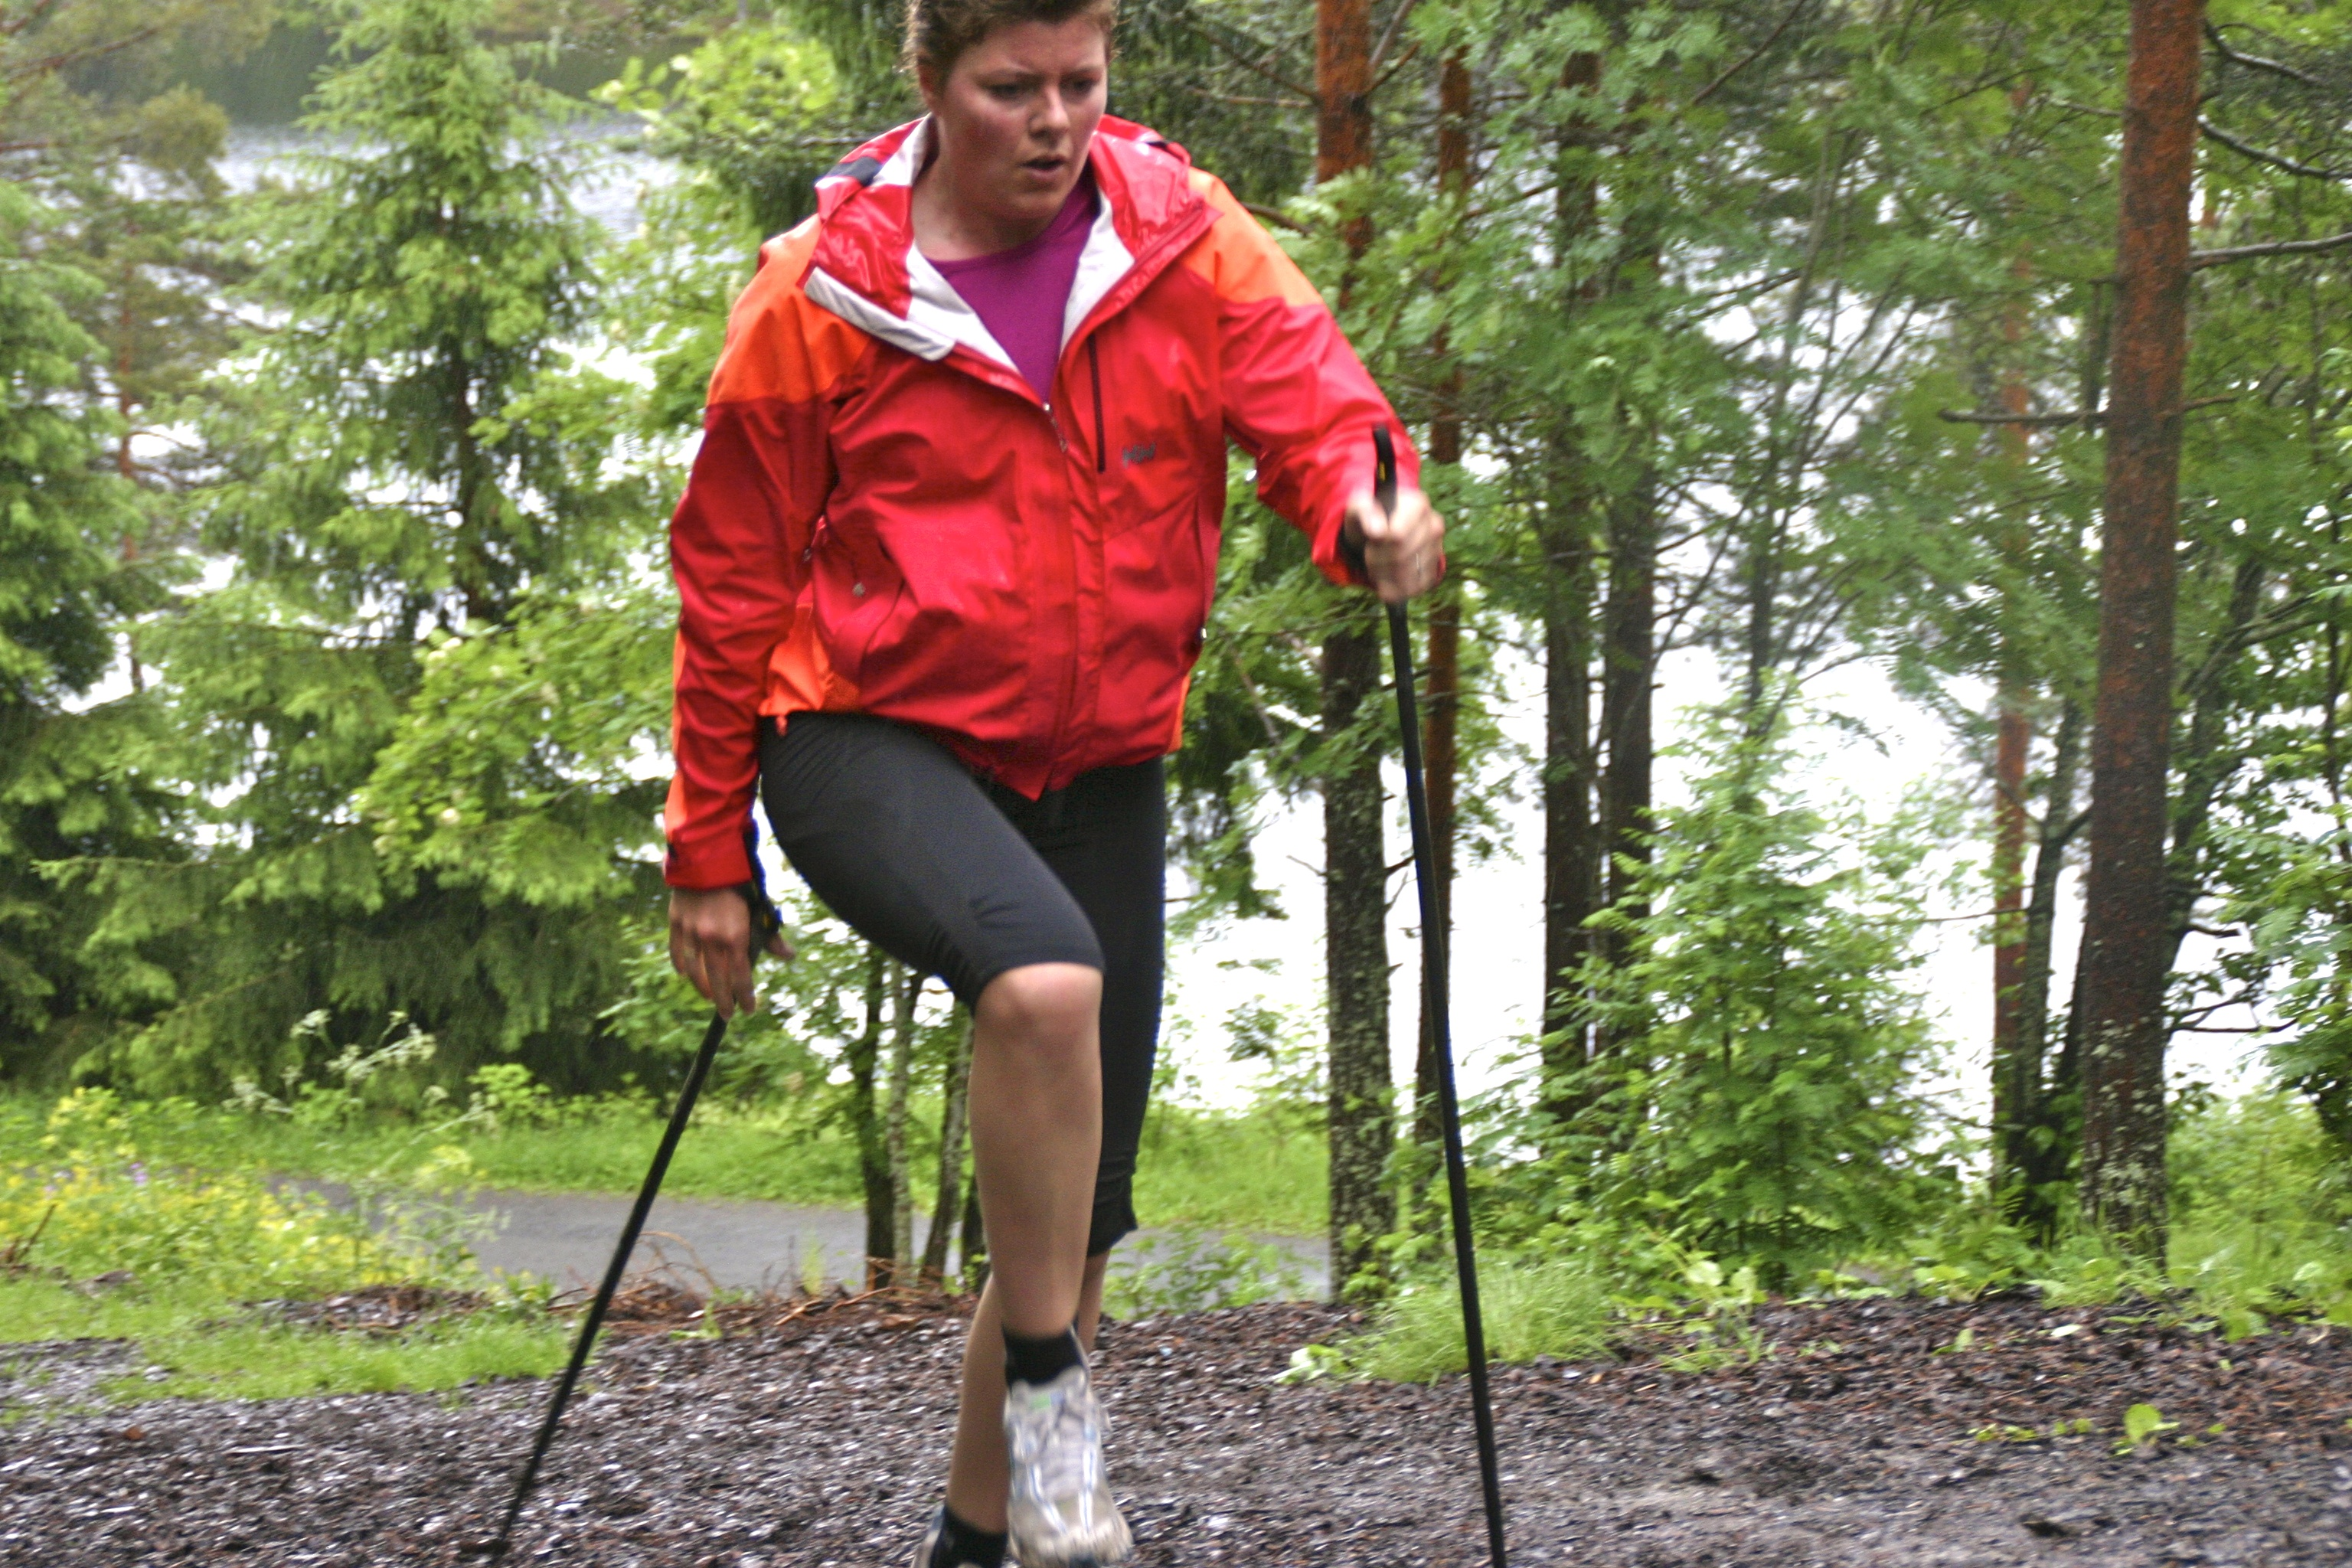 Nordic Training - Traust, men mer effektivt enn Boot Camp og CrossFit!